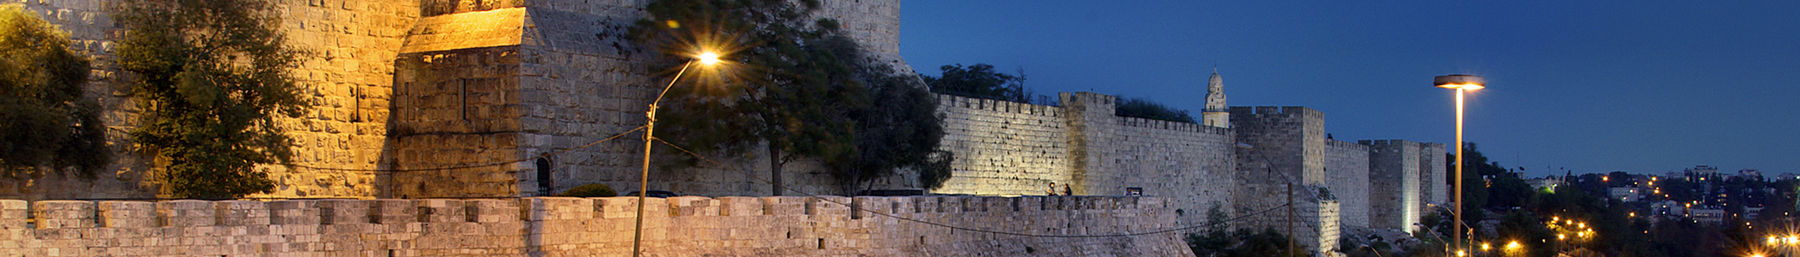 Jerusalem banner Tower of David.jpg